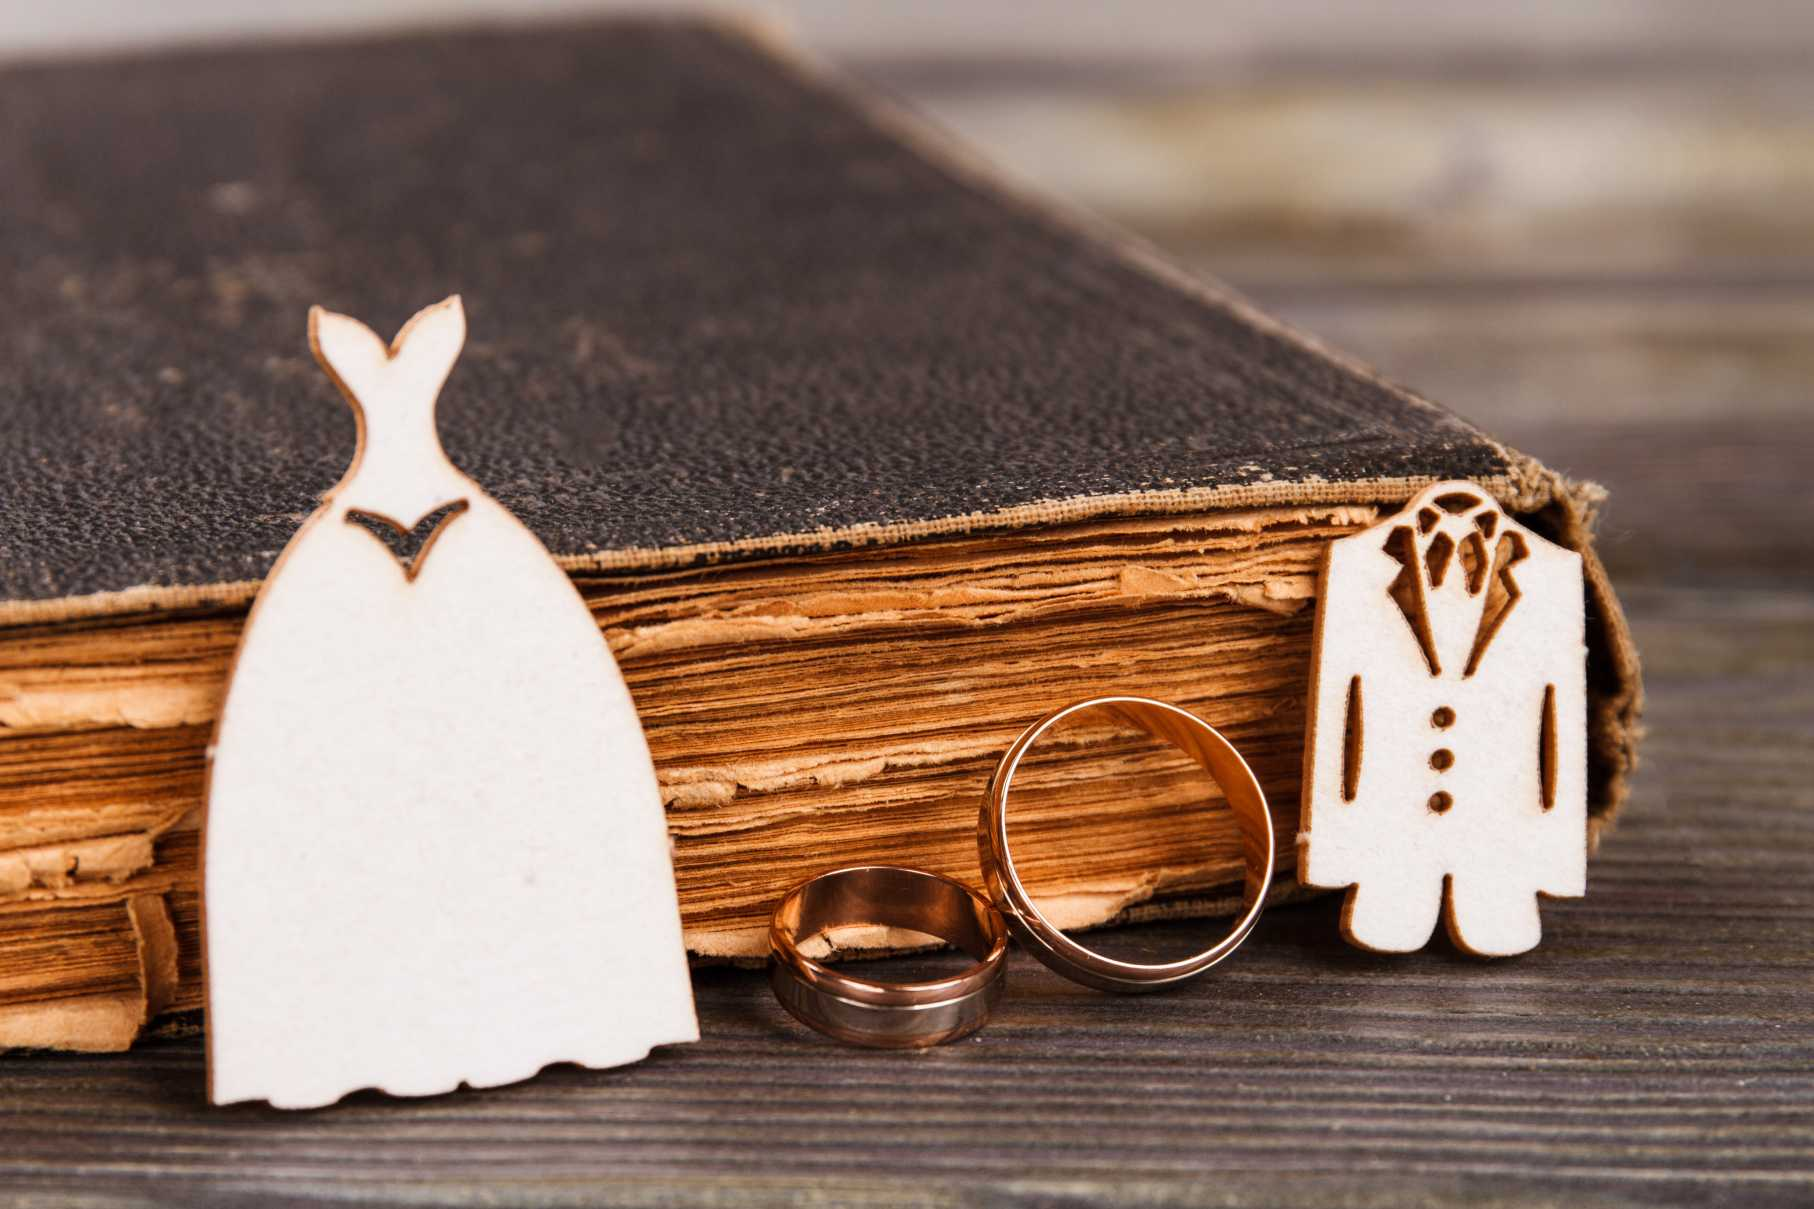 Wedding rings costumes and old book. Close-up bible and golden rings.